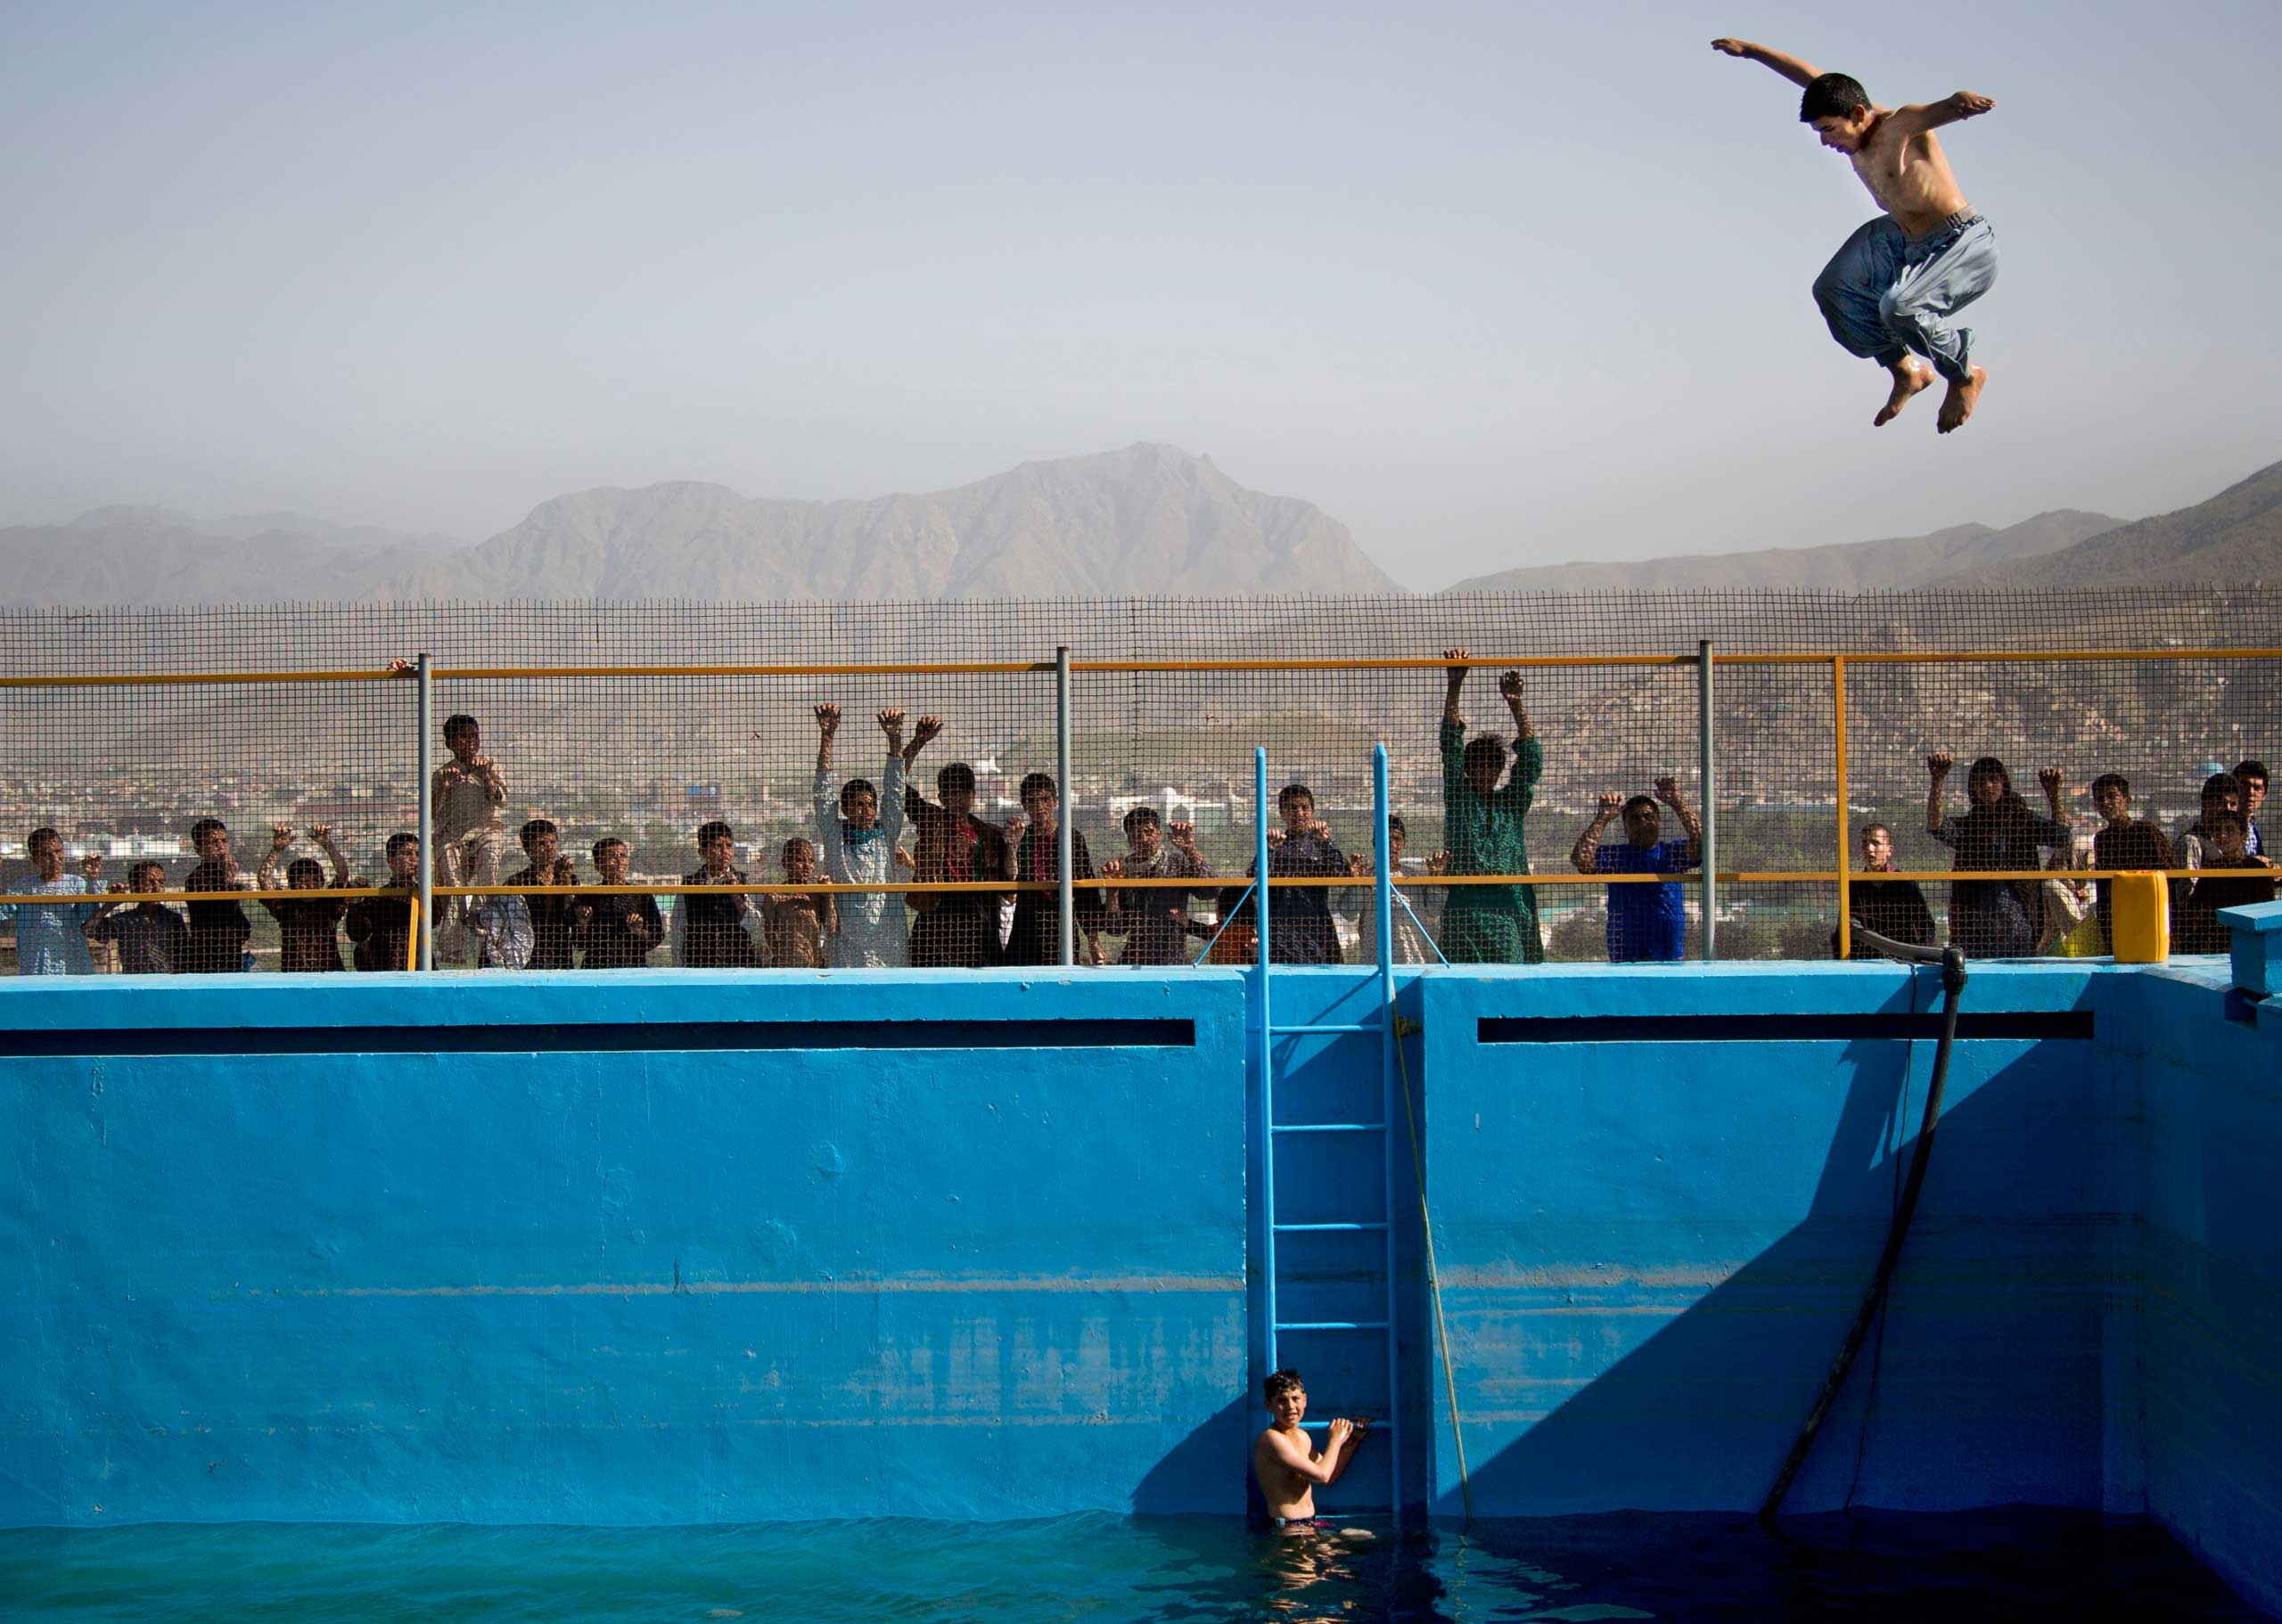 An Afghan man jumps from a diving board into a swimming pool on a hill overlooking Kabul, Afghanistan, Friday, May 17, 2013.